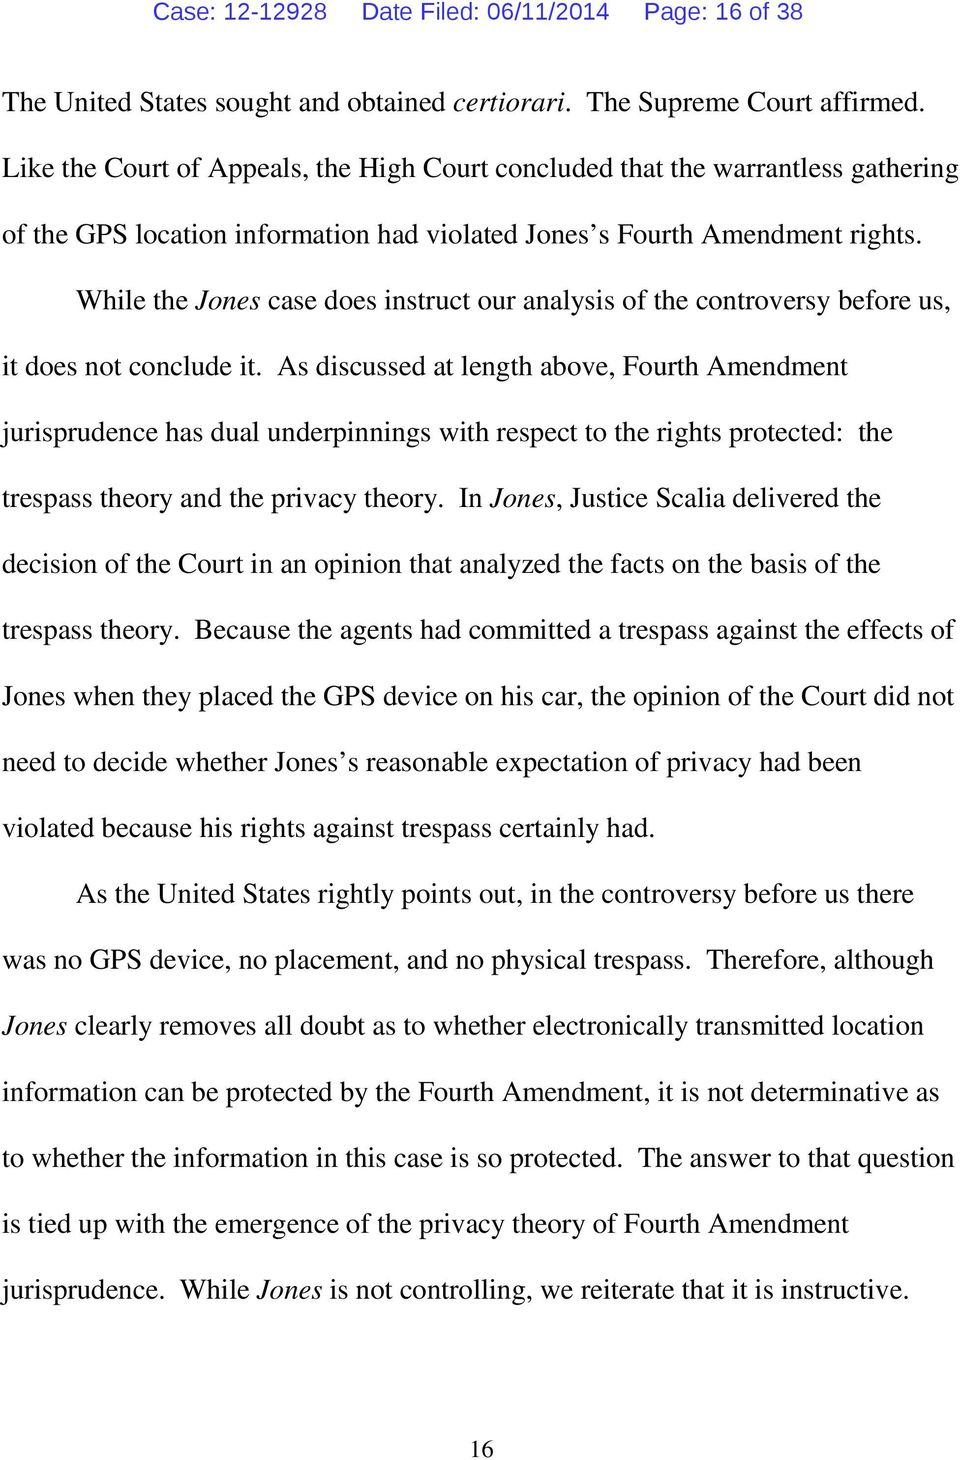 While the Jones case does instruct our analysis of the controversy before us, it does not conclude it.